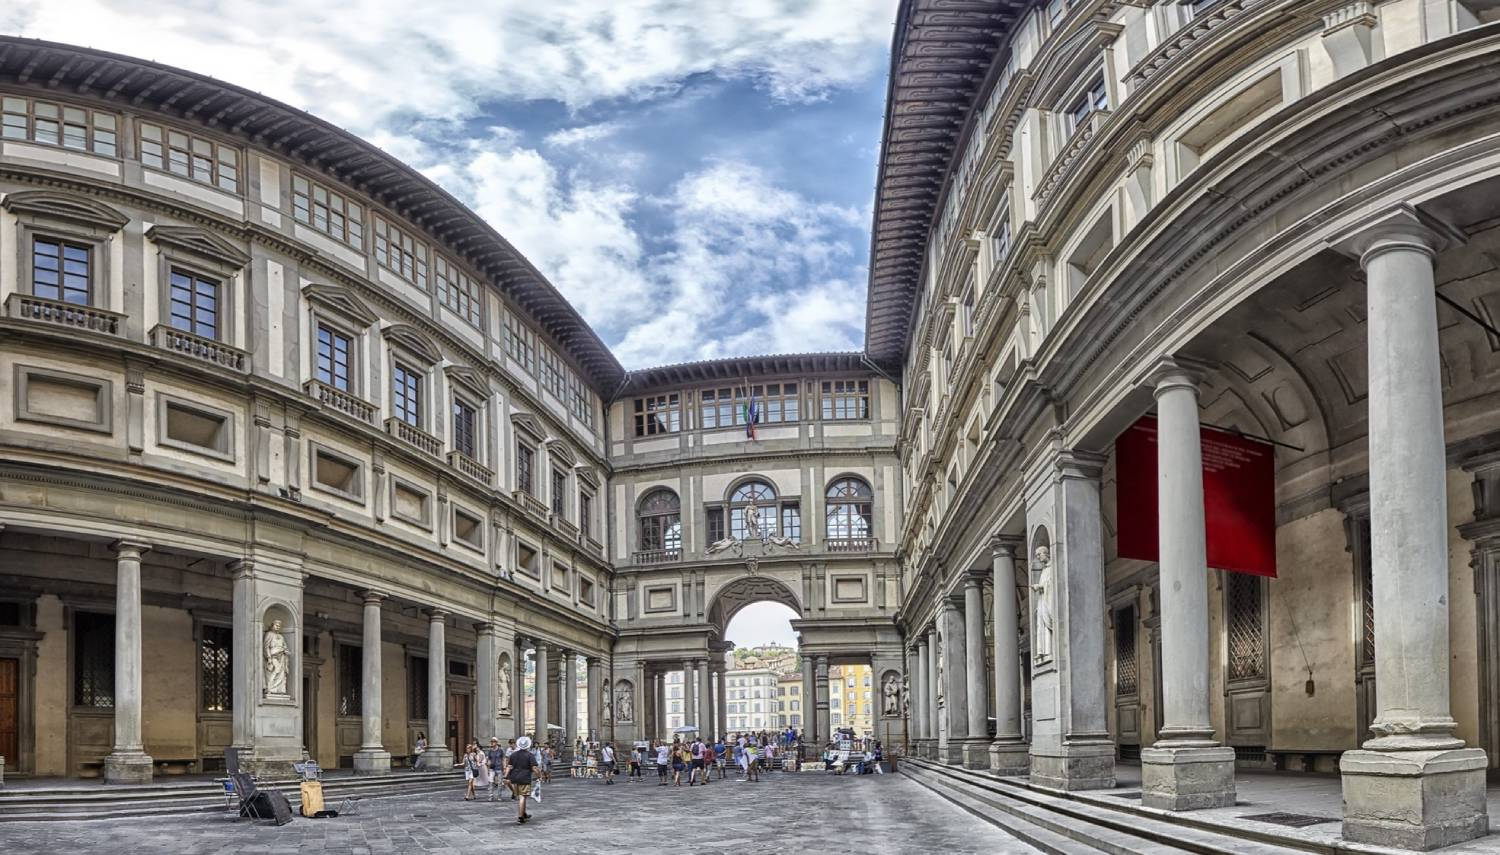 Uffizi Gallery - Things To Do In Florence